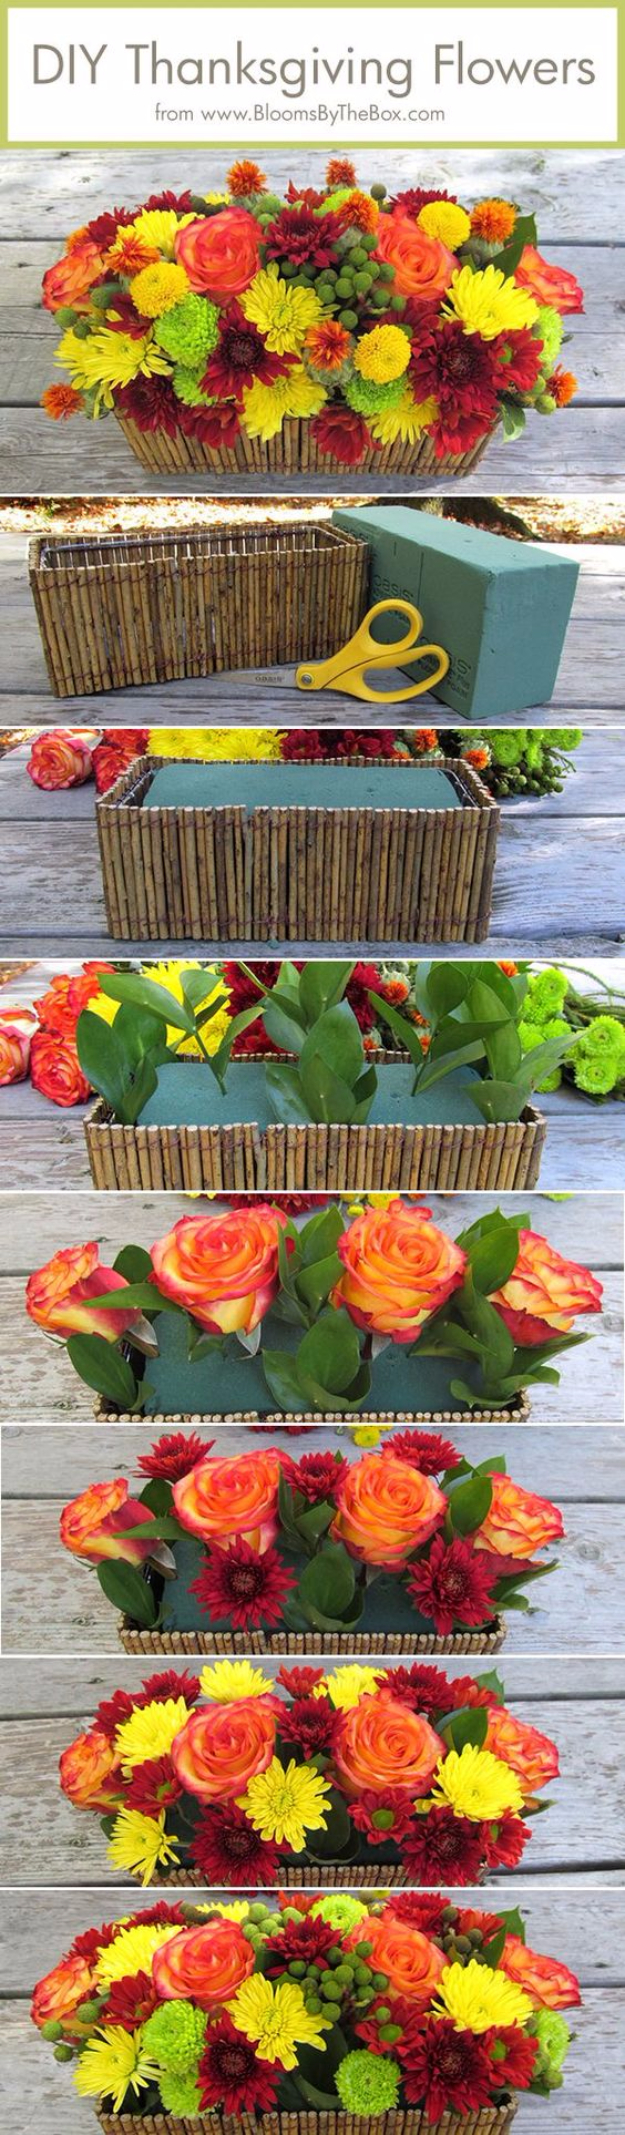 DIY Thanksgiving Decor Ideas - DIY Thanksgiving Flowers - Fall Projects and Crafts for Thanksgiving Dinner Centerpieces, Vases, Arrangements With Leaves and Pumpkins - Easy and Cheap Crafts to Make for Home Decor #diy